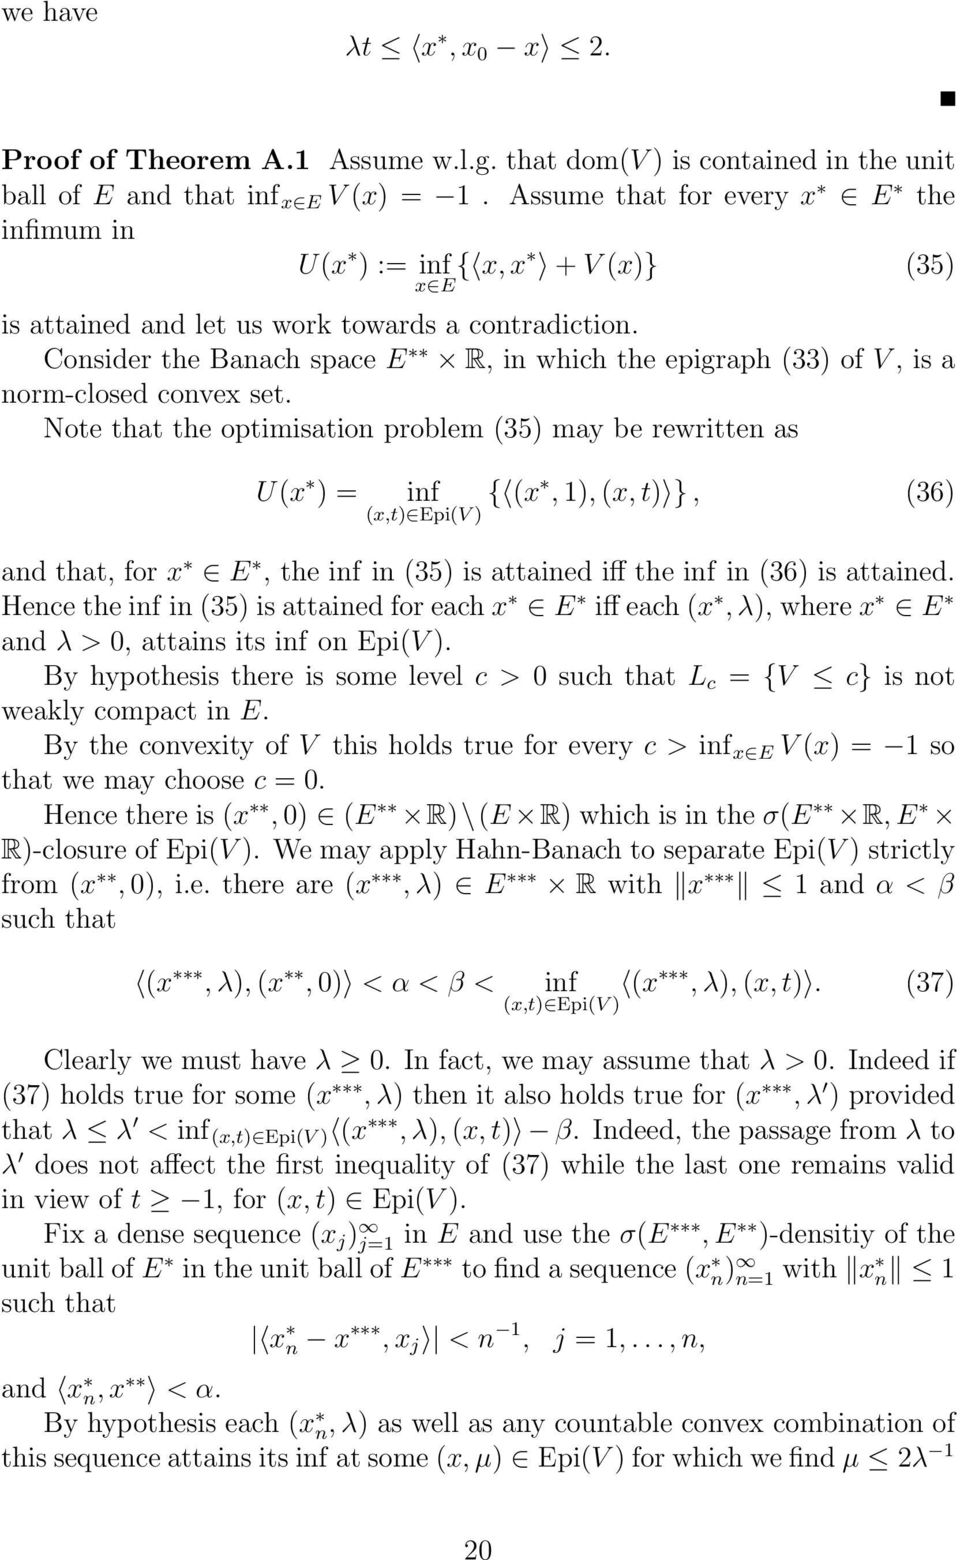 Consider the Banach space E R, in which the epigraph (33) of V, is a norm-closed convex set.